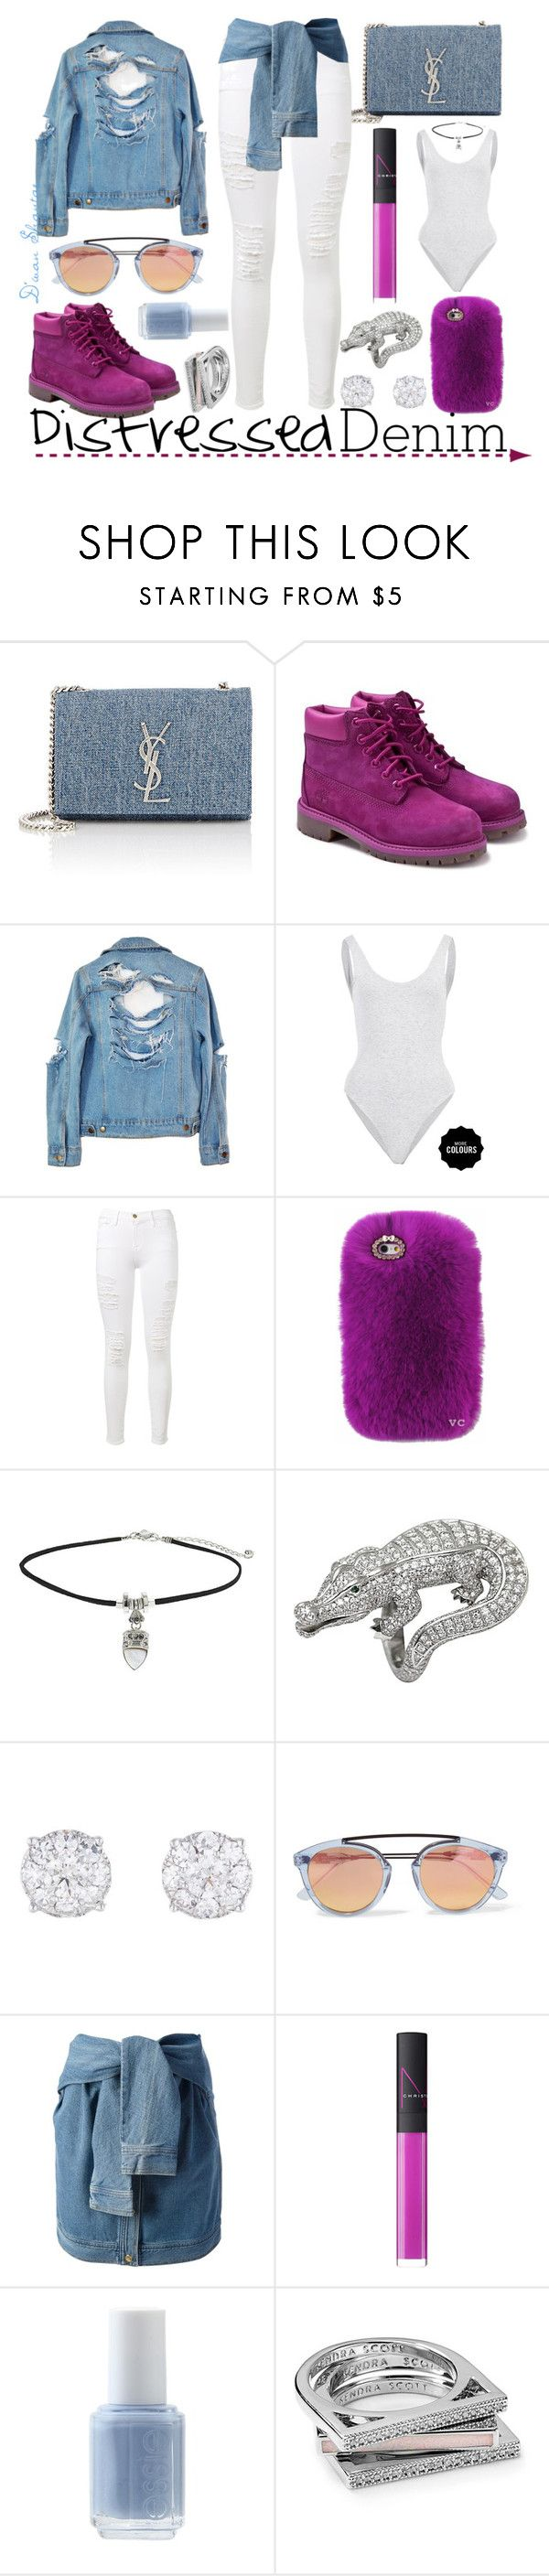 """""""How To Style Distressed Denim"""" by adswil ❤ liked on Polyvore featuring Yves Saint Laurent, Timberland, High Heels Suicide, Frame Denim, Topshop, Cartier, Westward Leaning, DKNY, NARS Cosmetics and Essie"""